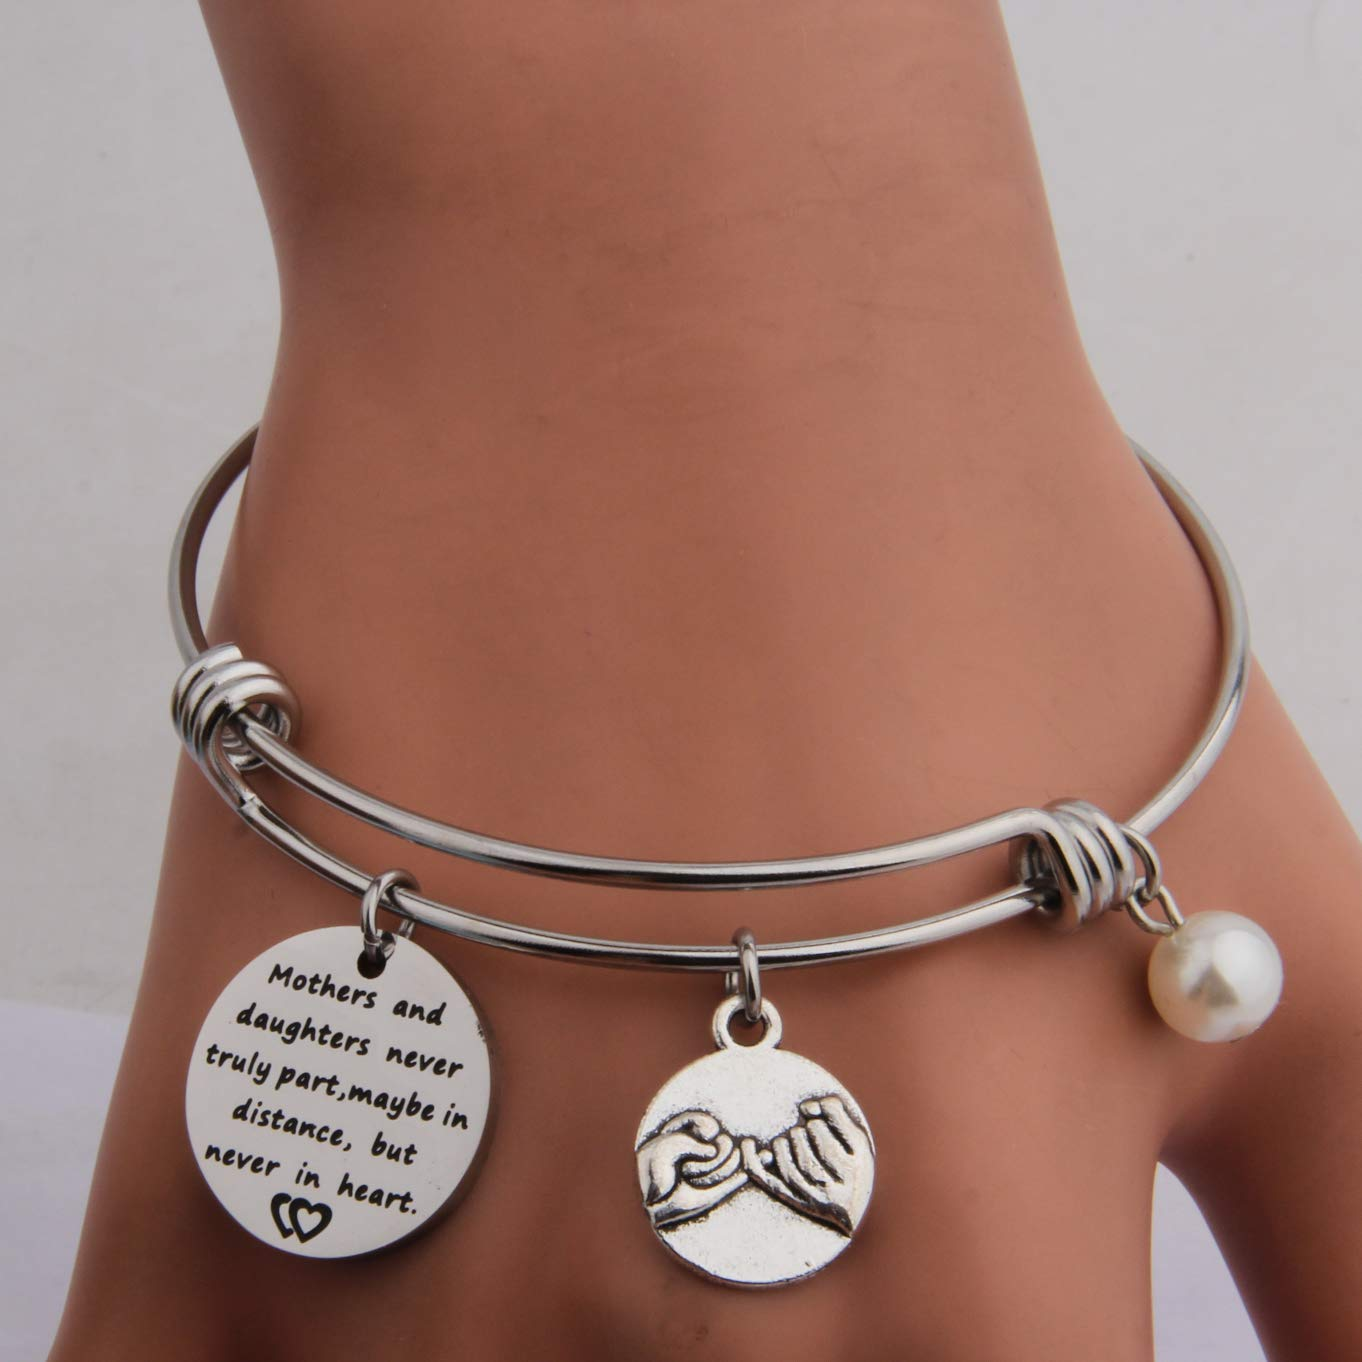 QIIER Mothers and Daughters Maybe in Distance But Never Truly Part But Never in Heart Bangle Bracelet Mother Daughter Long Distance Relationship Gift